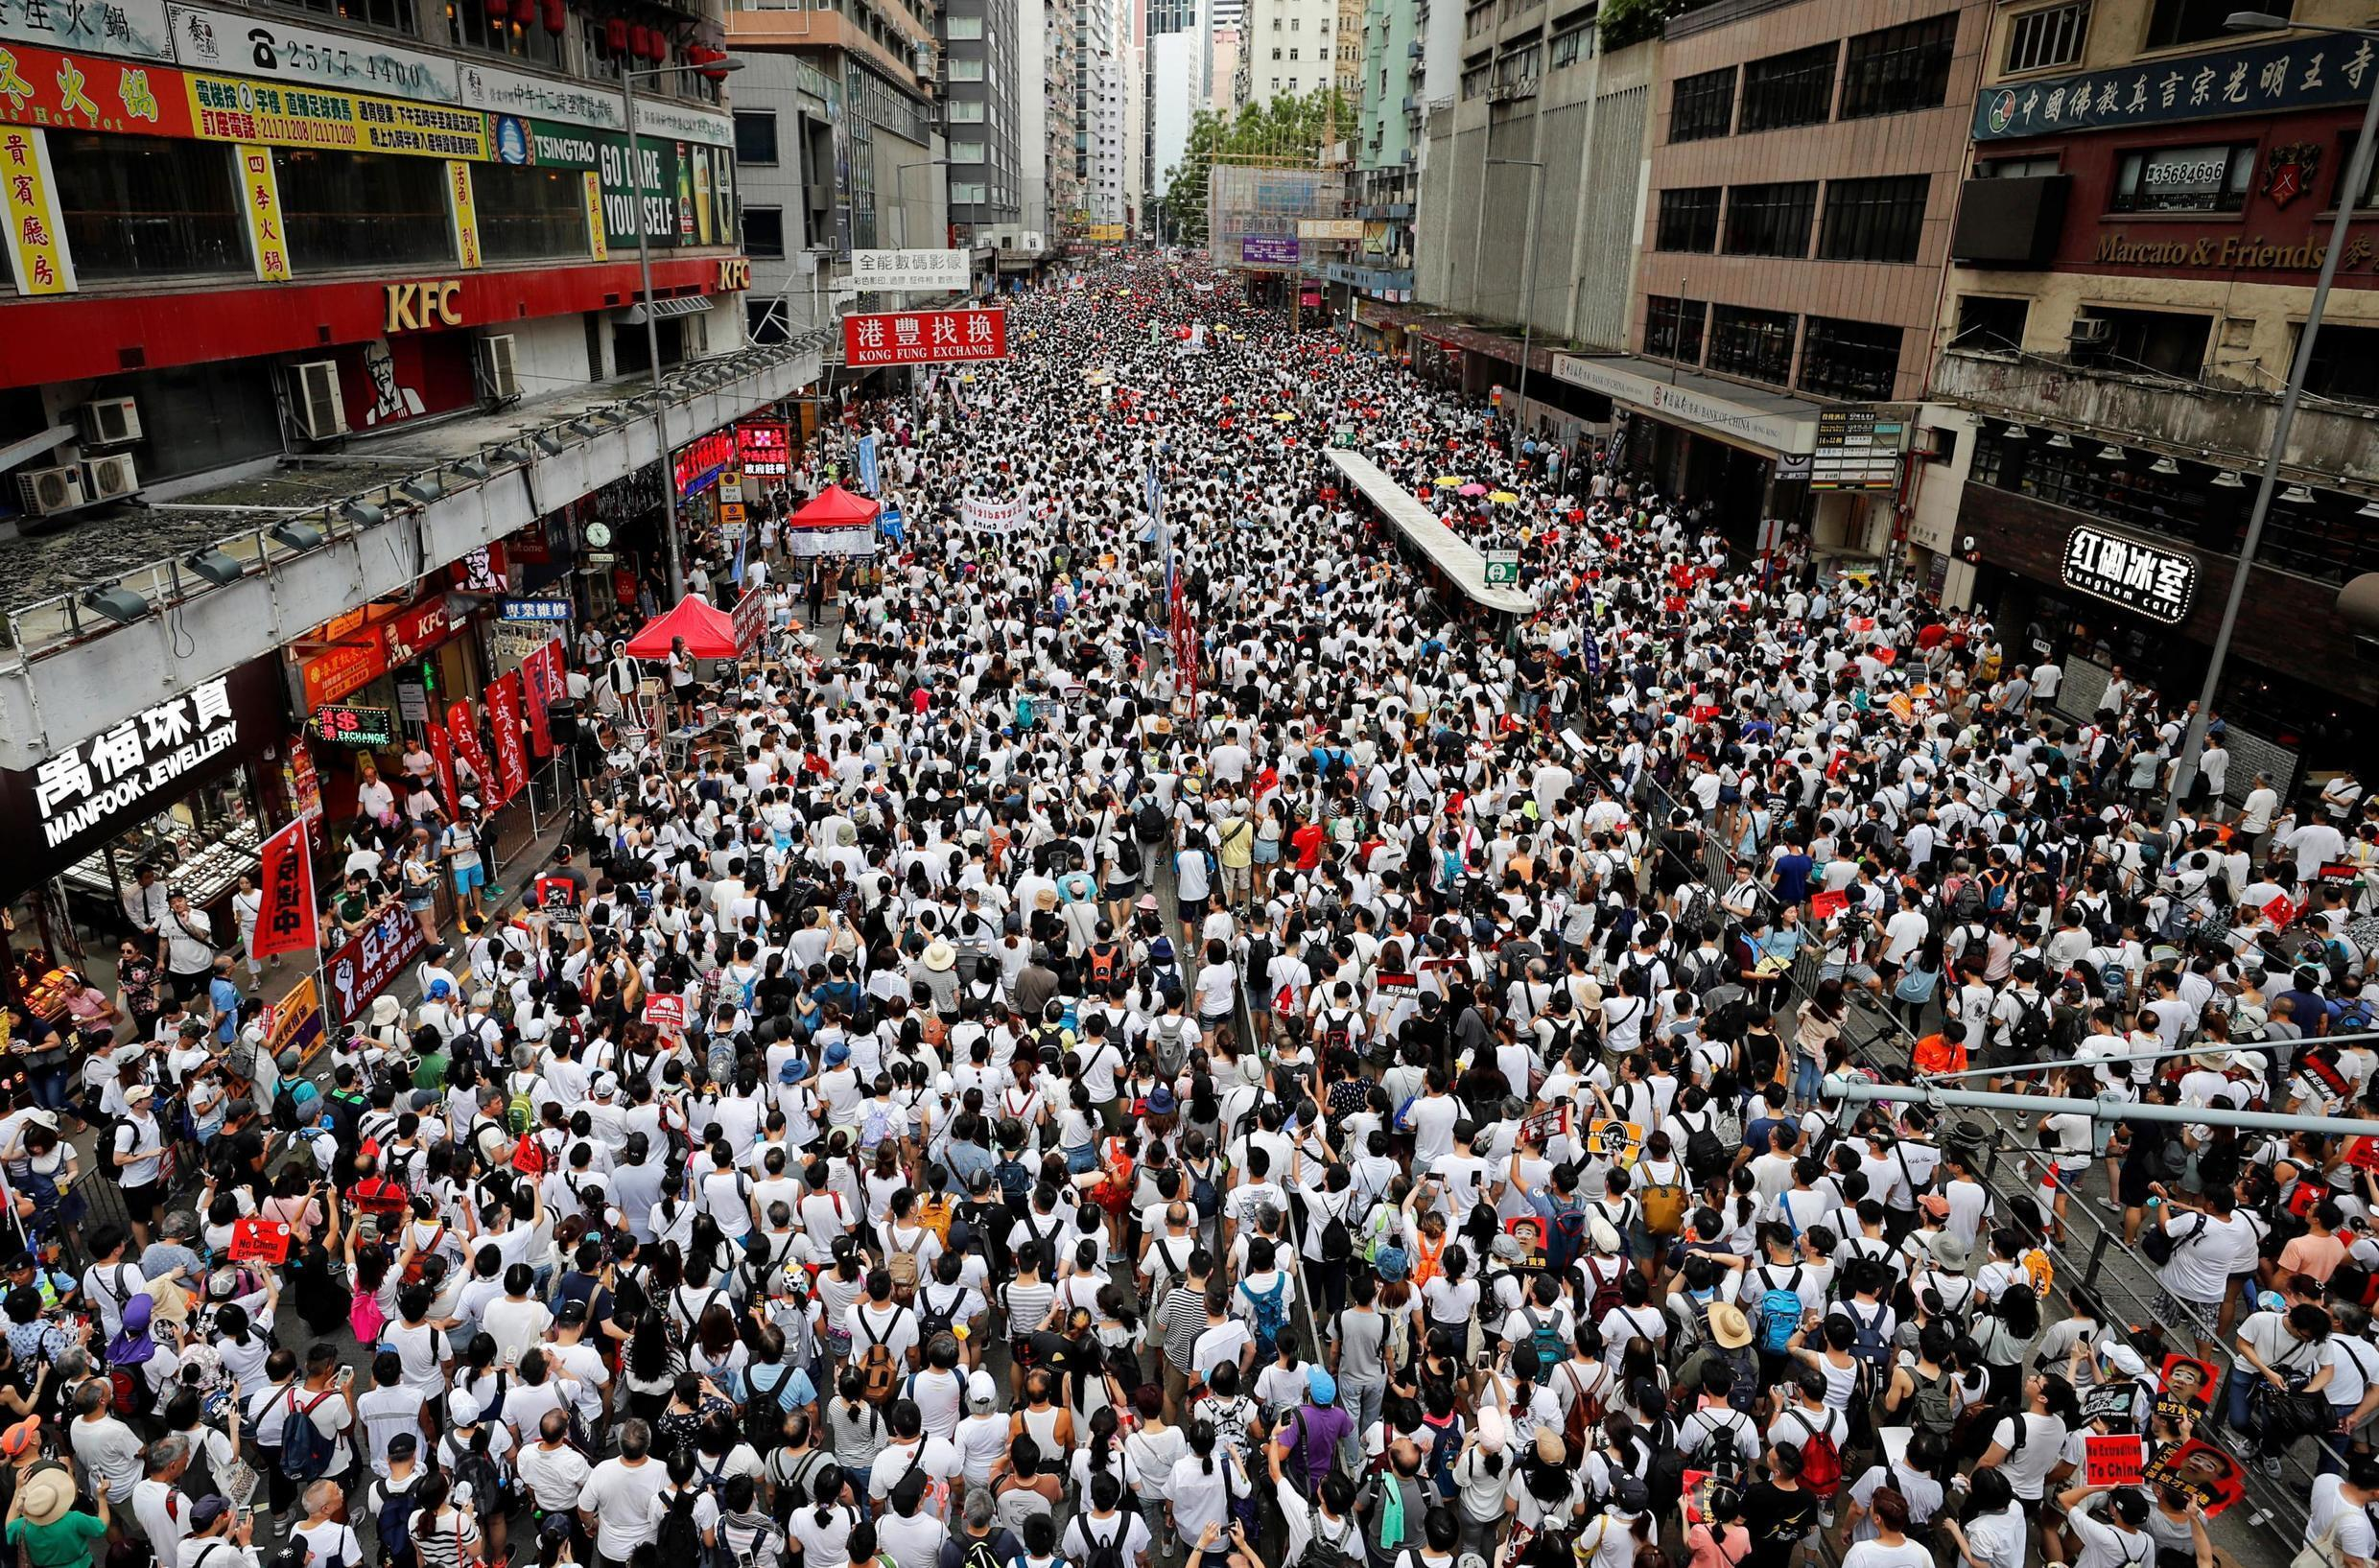 Hong Kong protestors demanding that the authorities scrap a proposed extradition bill, June 2019.